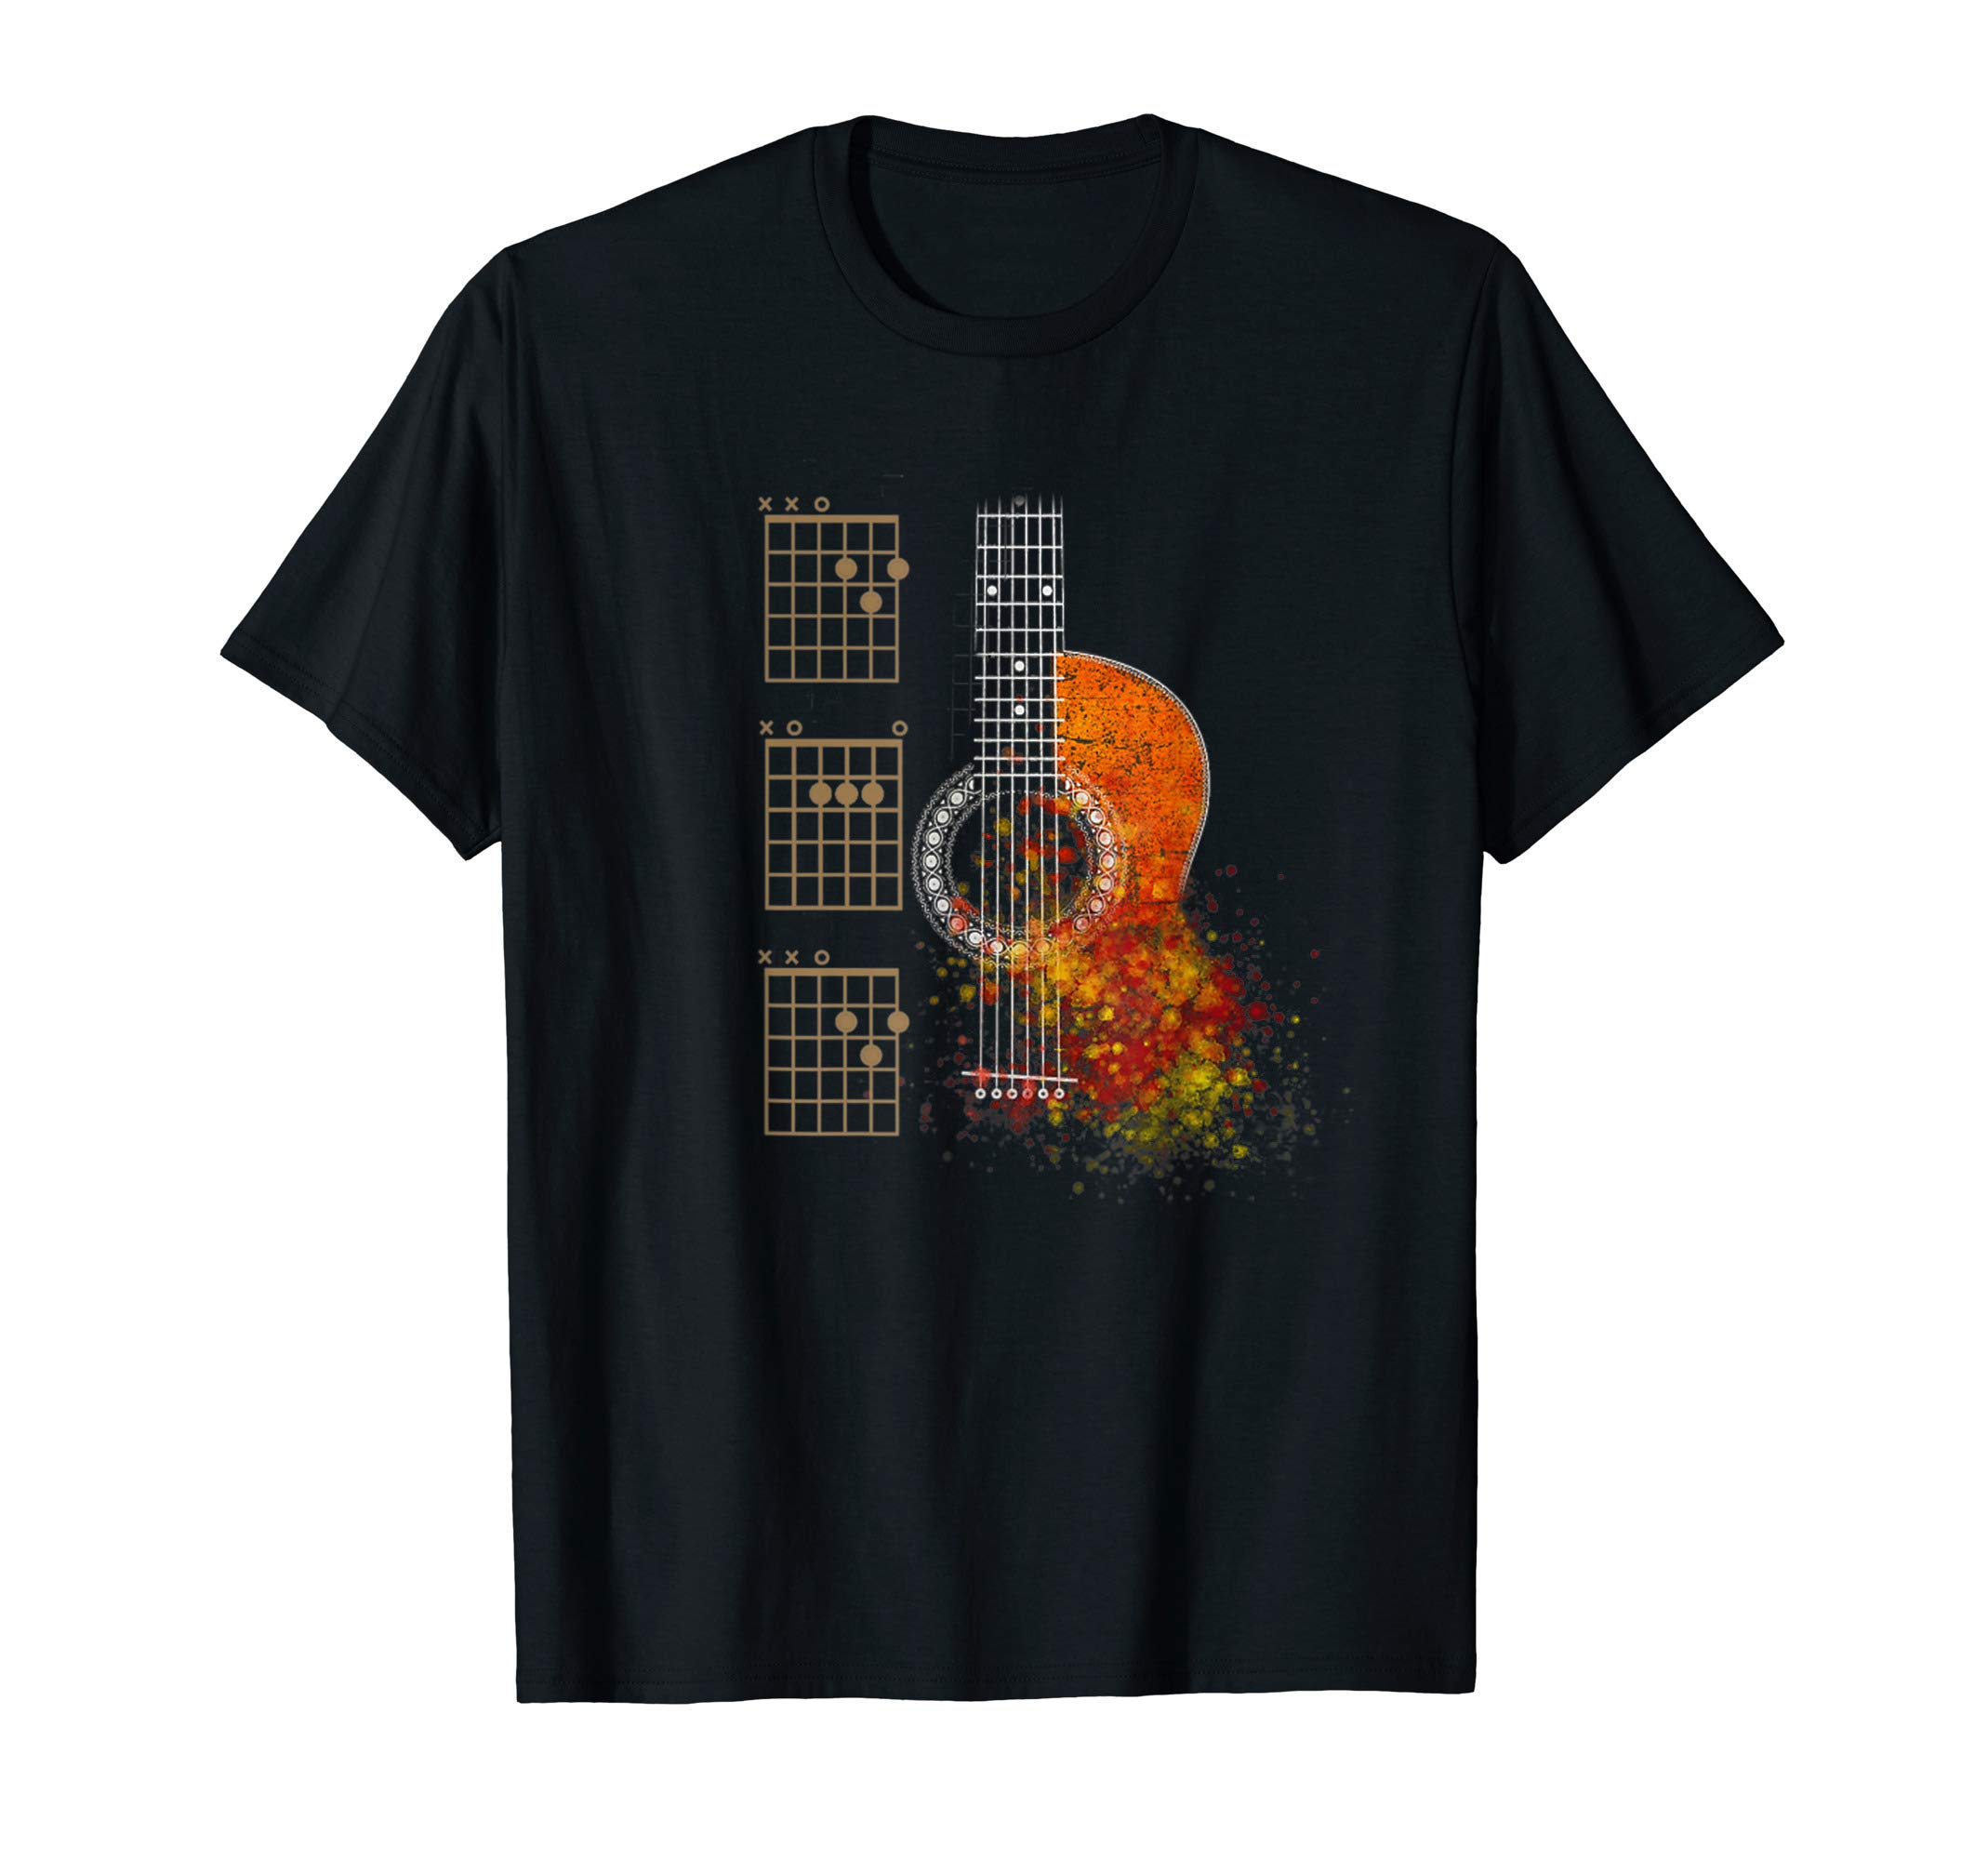 DAD Chords Acoustic Guitar Shirt by The Acoustic Guitarist Lovers T-shirt